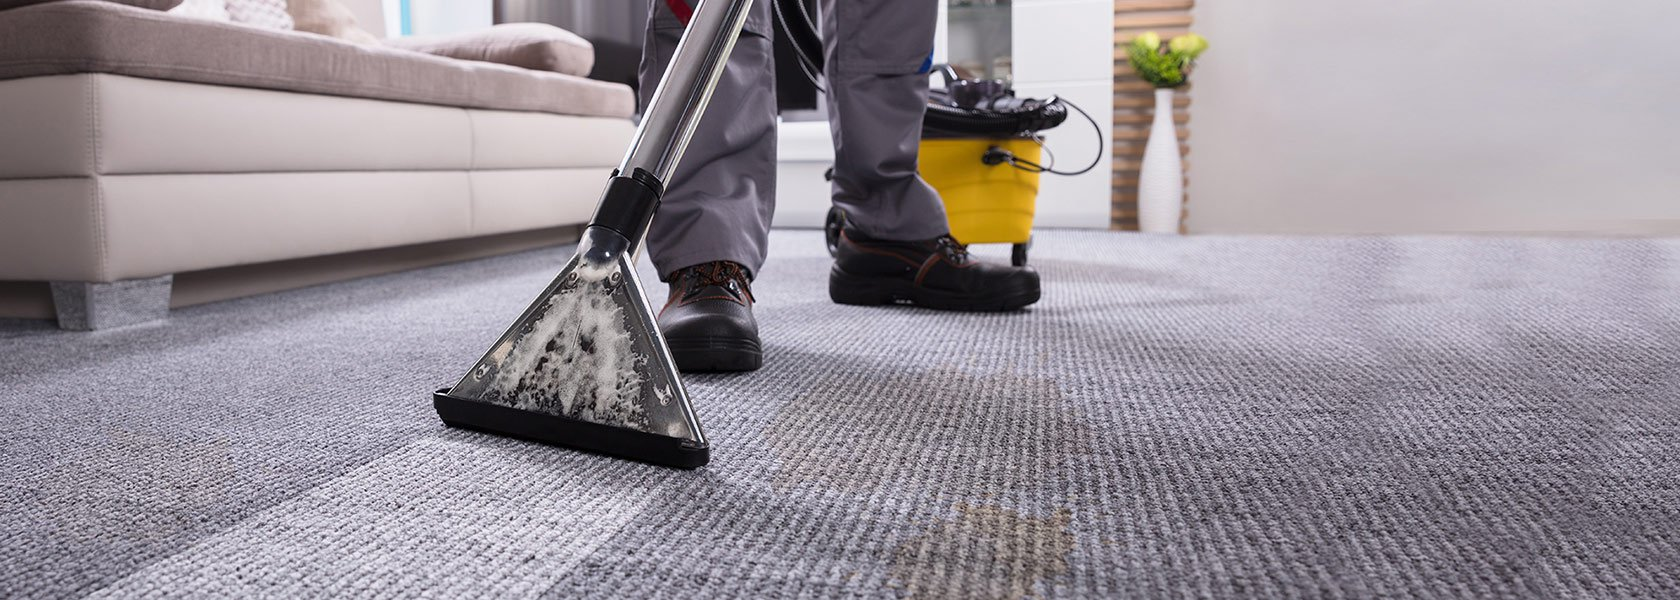 Carpet Cleaning Services Near Me in Dubai